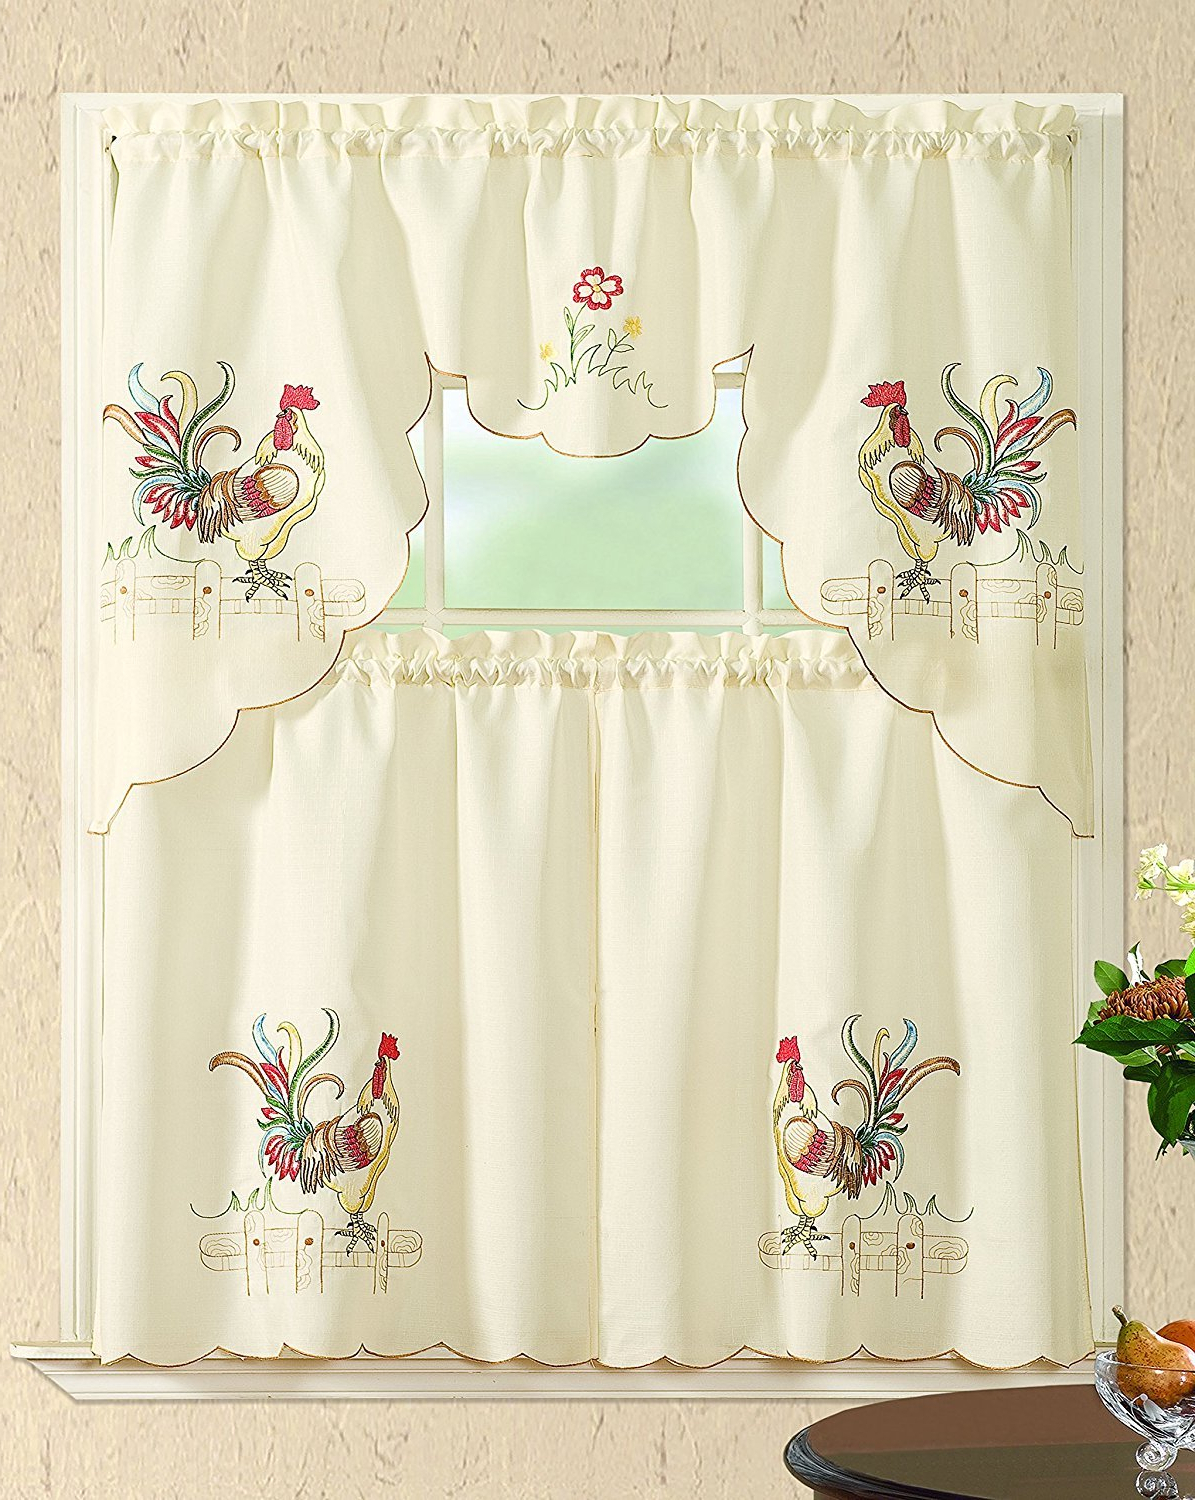 Latest Embroidered Chef Black 5 Piece Kitchen Curtain Sets With Regard To All American Collection New 3Pc Embroidered Kitchen Curtain Set Various  Designs (Swag Valance, Colored Rooster) (Gallery 8 of 20)